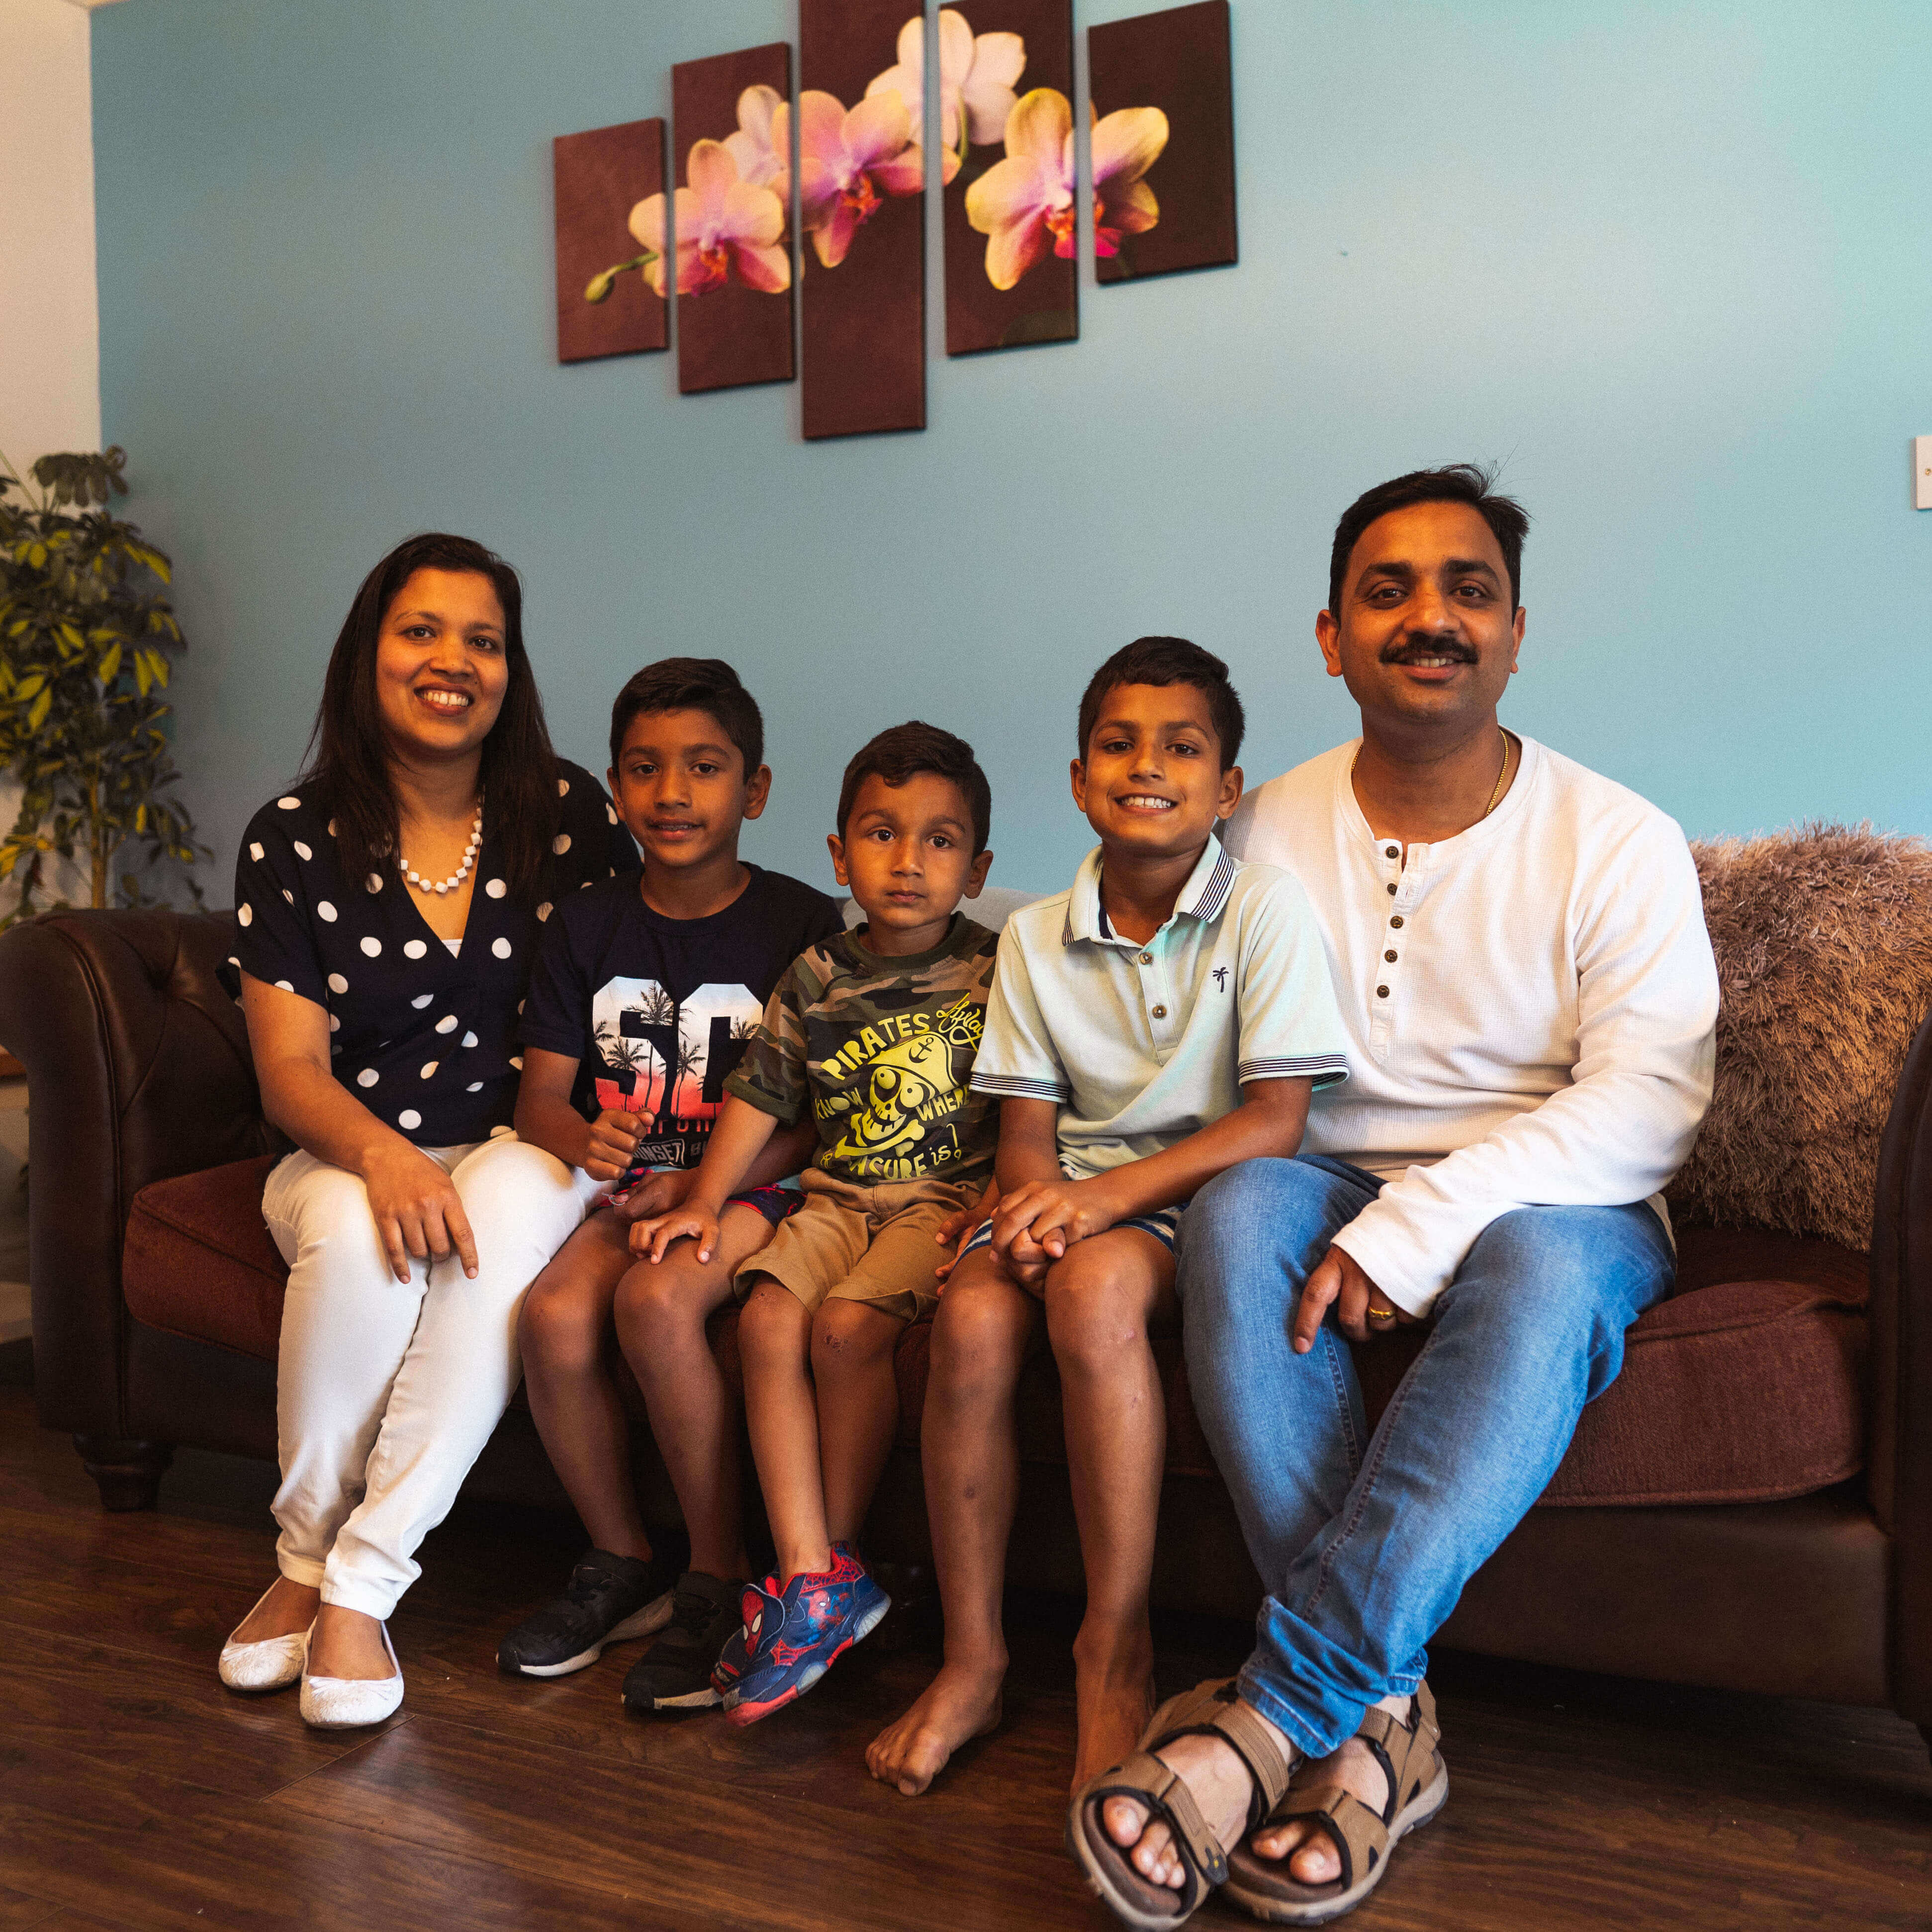 Biji and Sithosh sitting together with their three sons.on a couch in their new home.